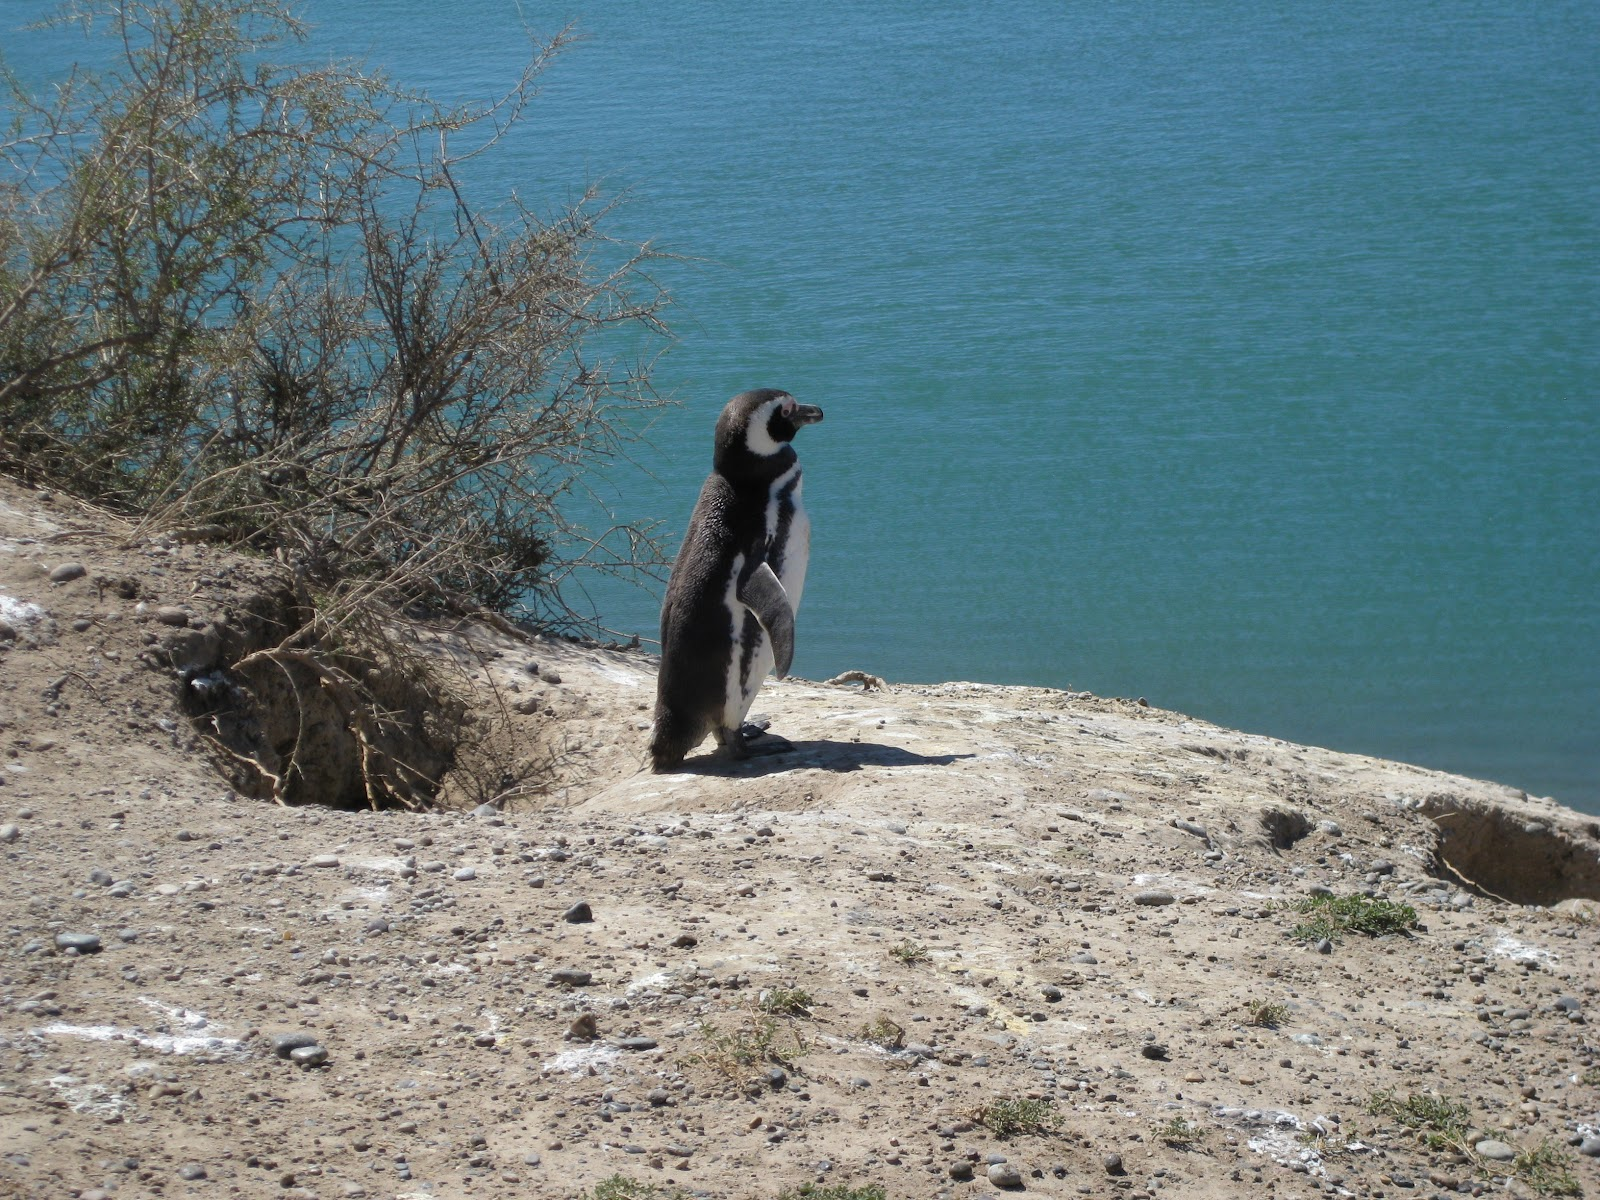 Magellanic penguin, only a couple of metres away